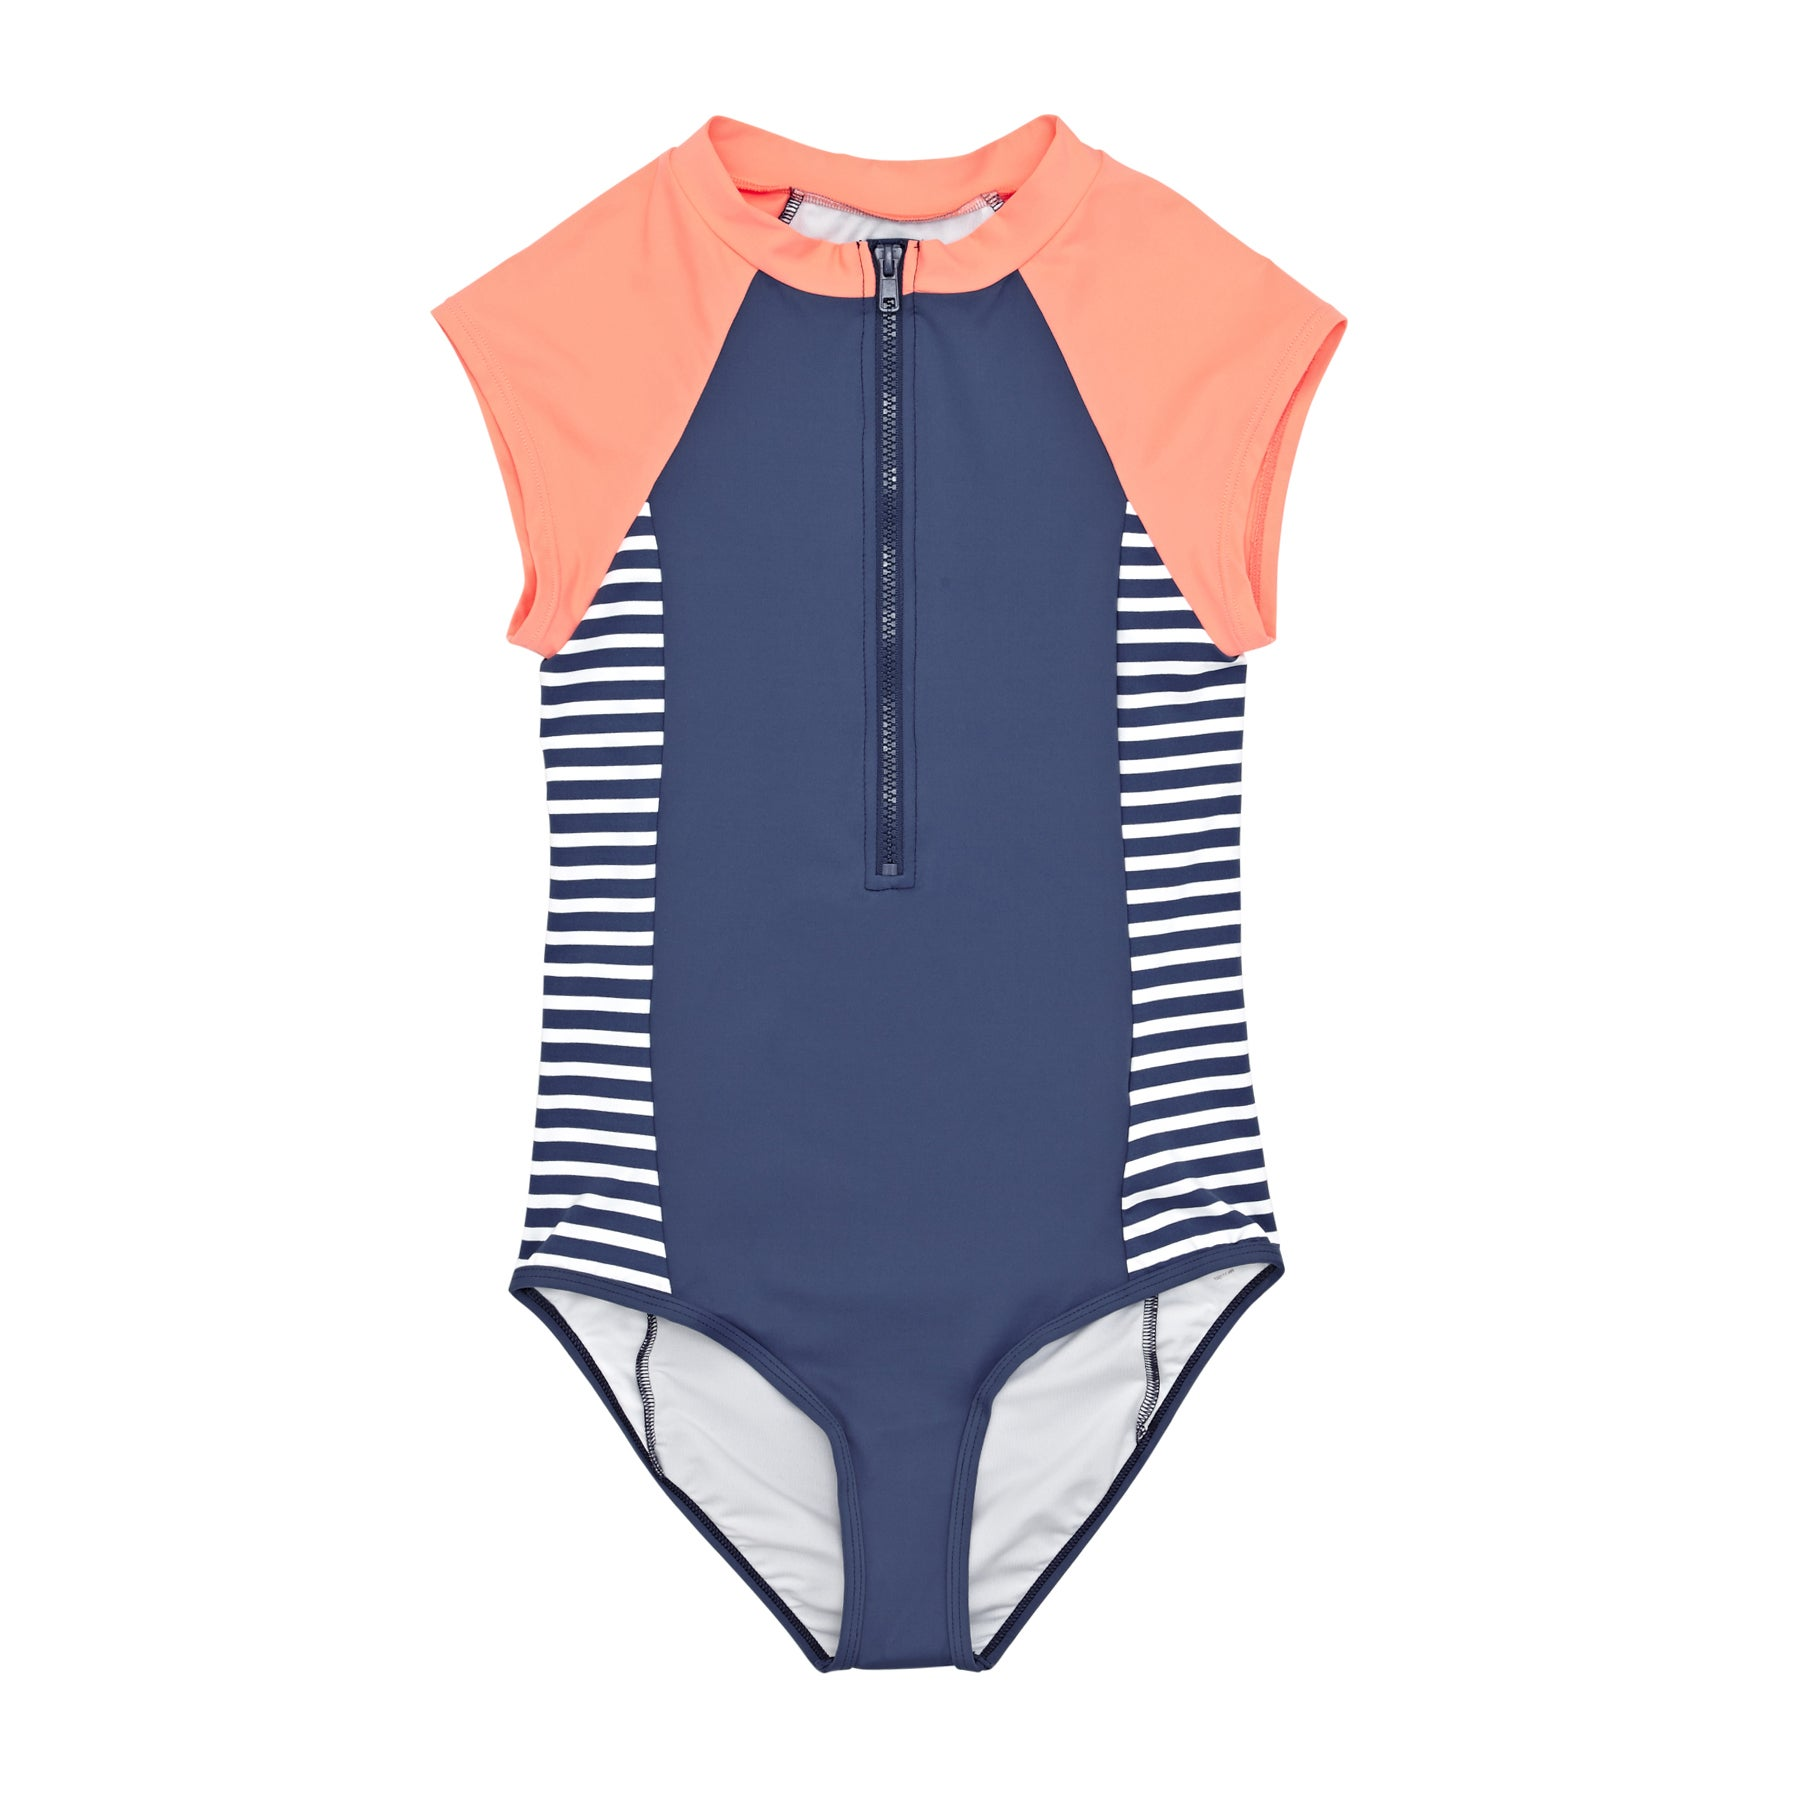 SWELL Stripe Short Sleeve Girls Swimsuit - Navy